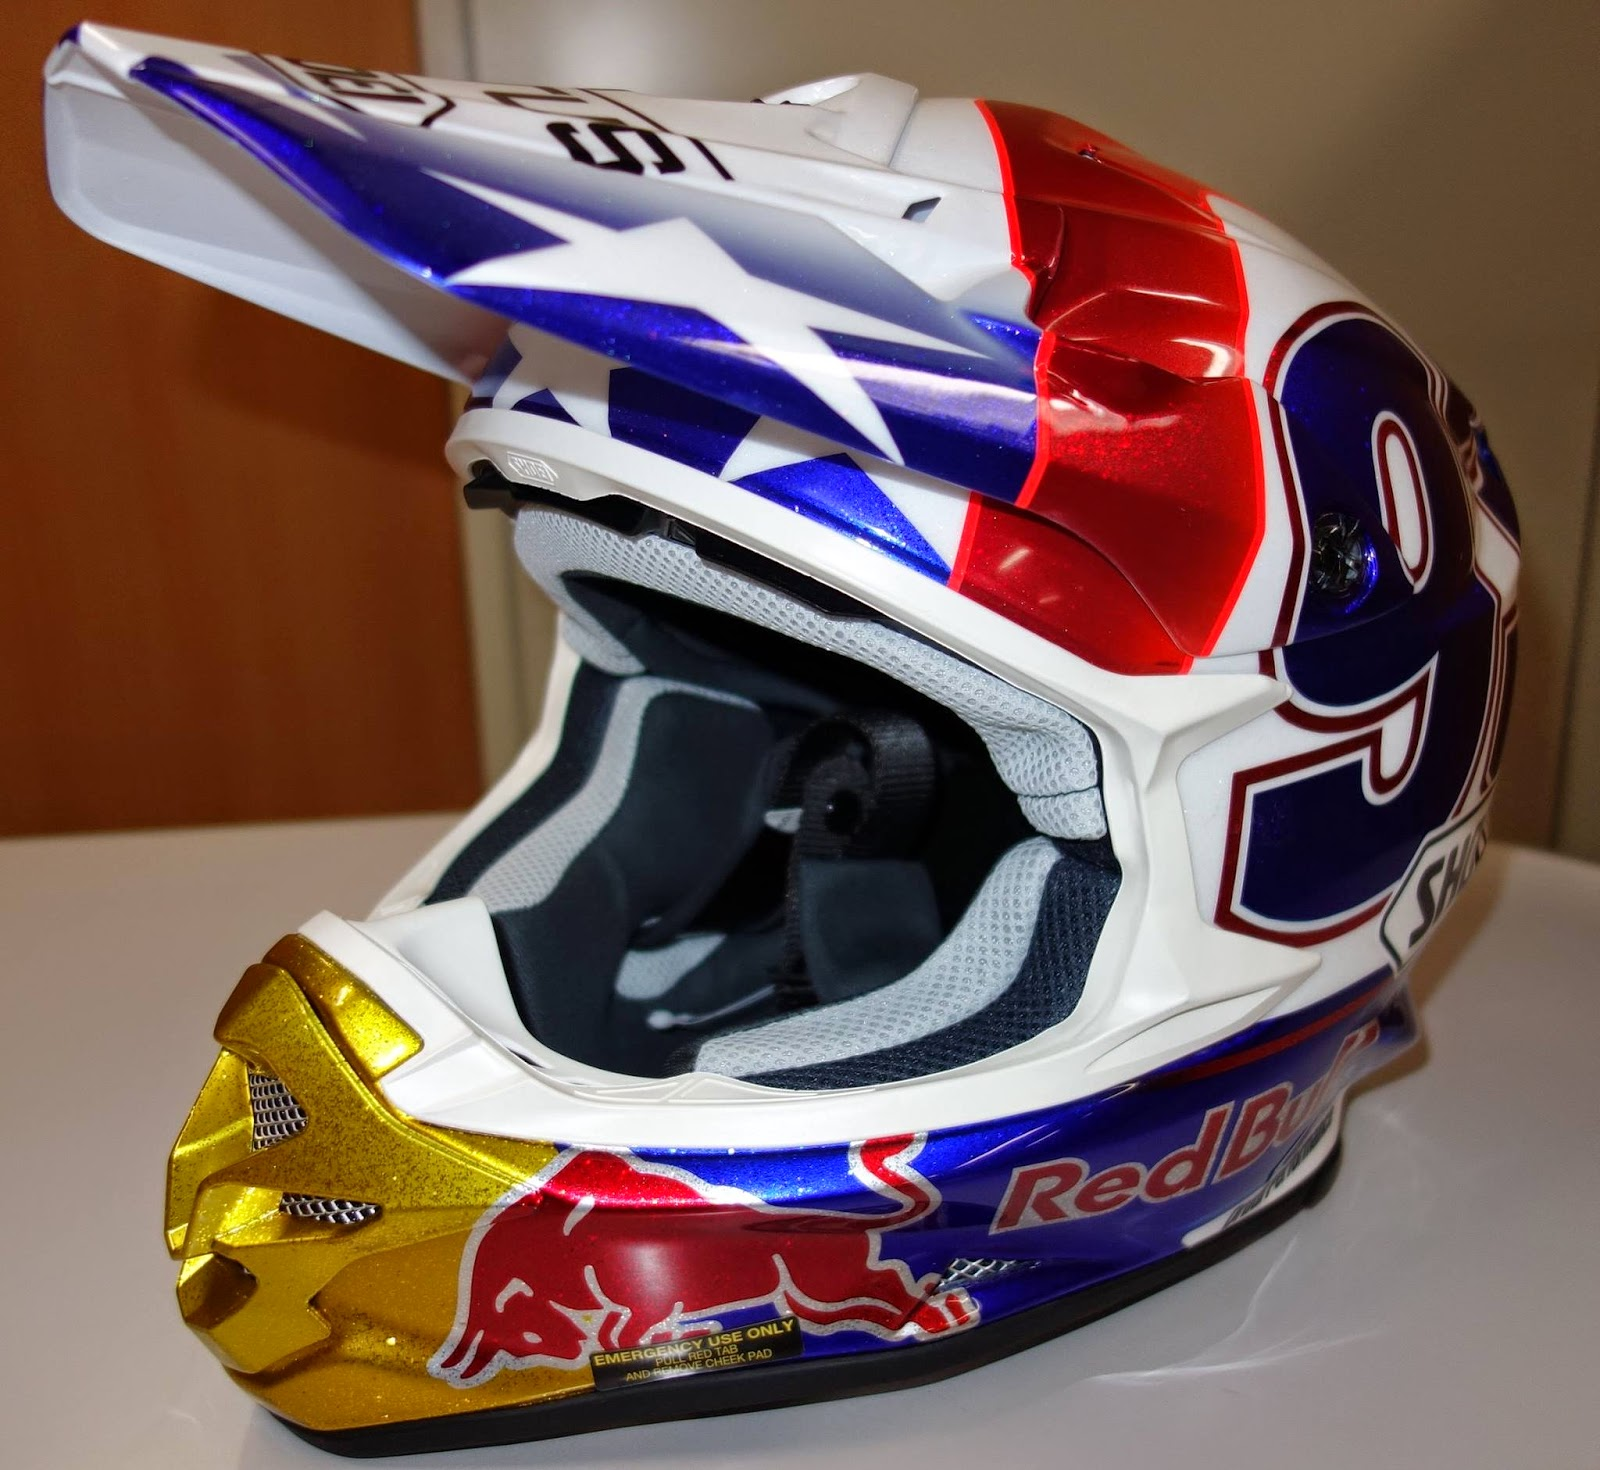 Racing helmets garage shoei vfx w m m rquez for Dirt track garage